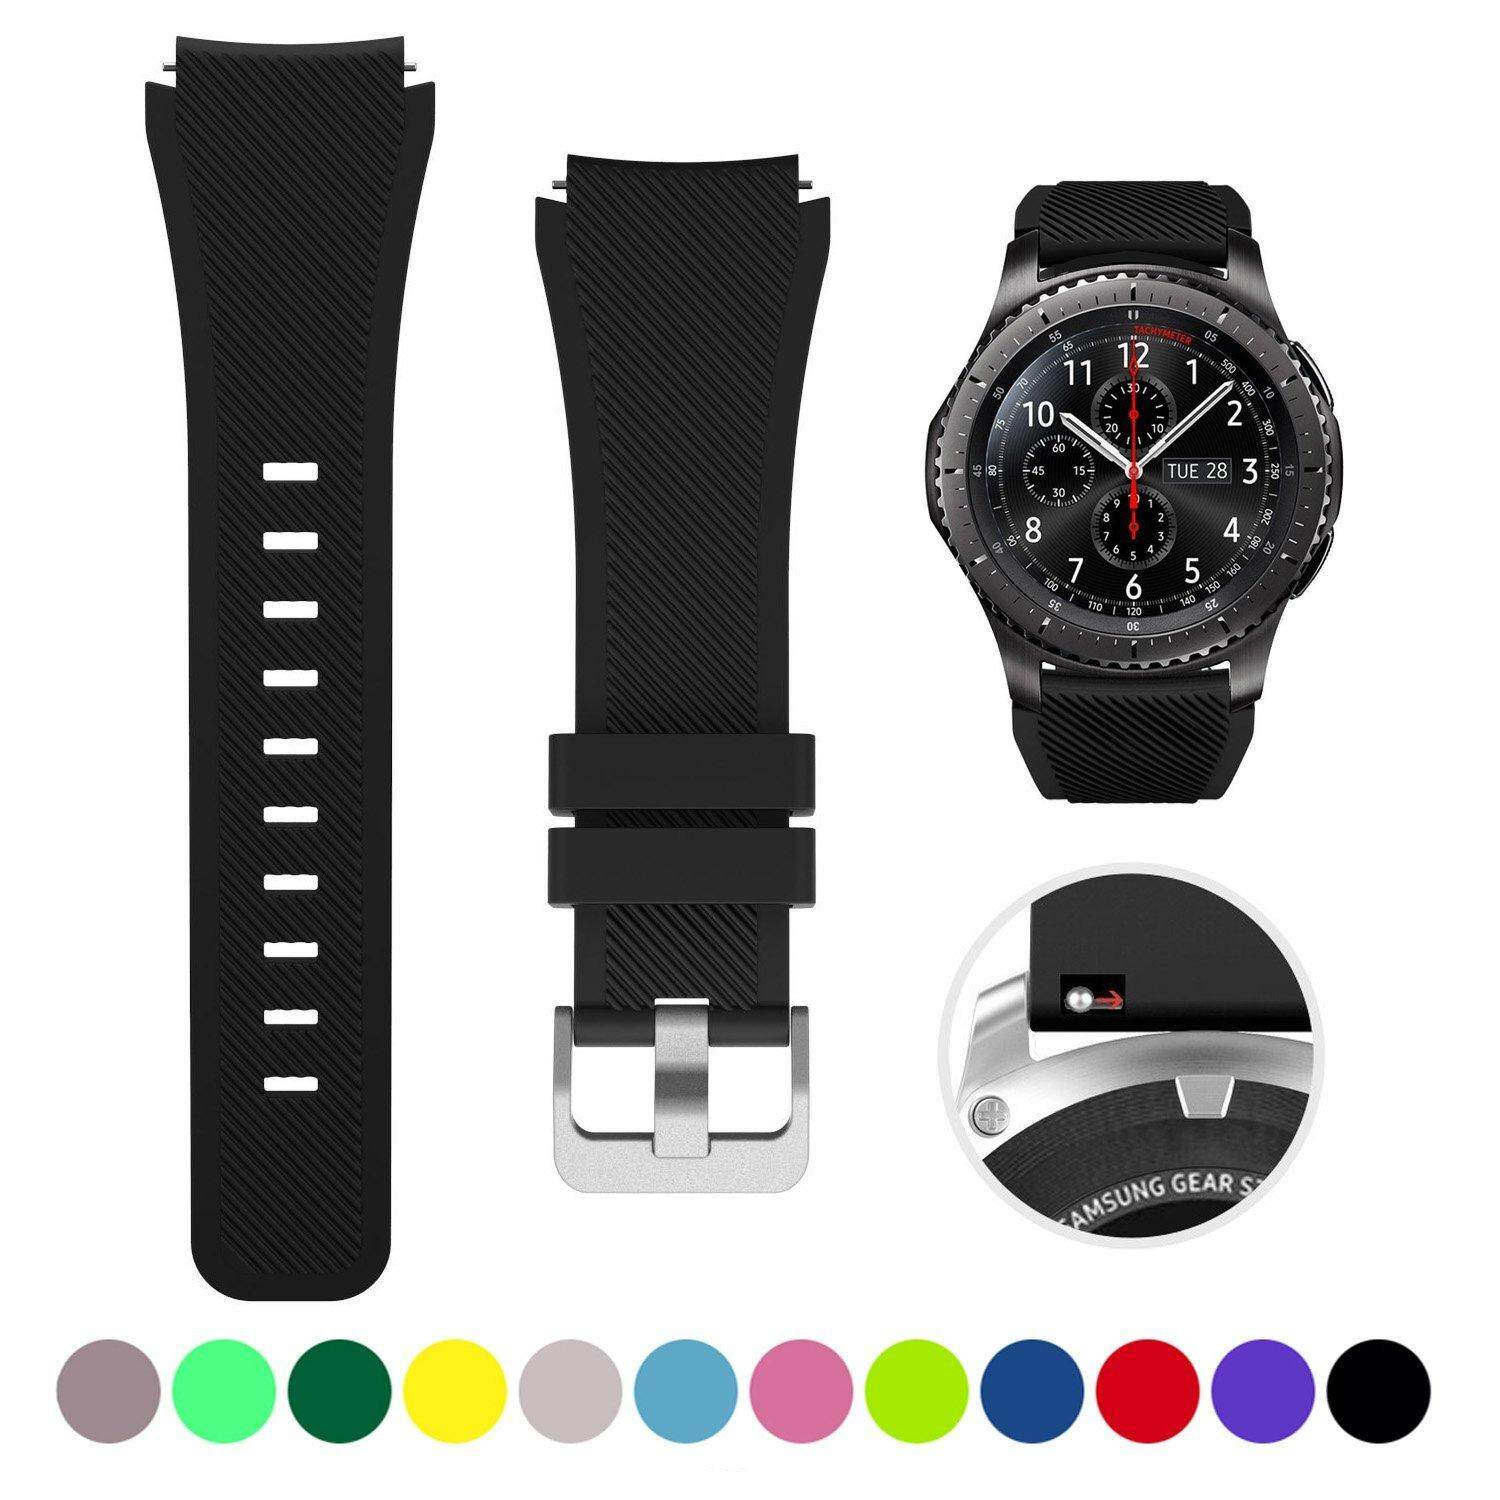 22mm Universal Silicone Bands For Samsung Gear S3 Frontier Classic Bracelet Sports Strap Replacement Wristband quick release pin Malaysia